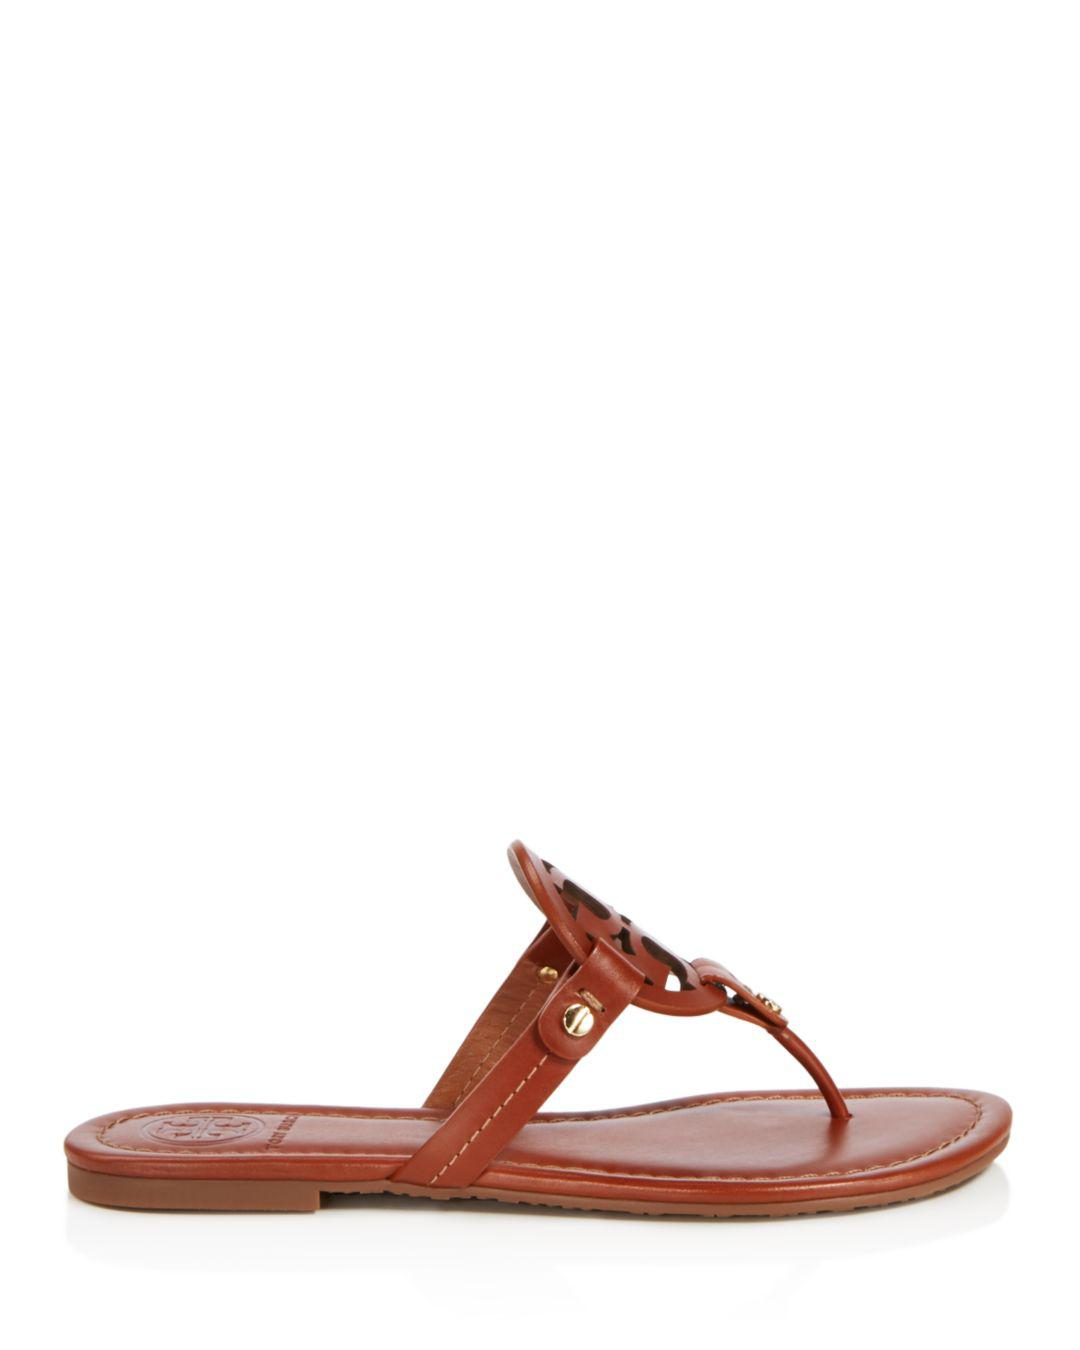 54e410b8ef01 Lyst - Tory Burch Flat Thong Sandals - Miller in Brown - Save 19%